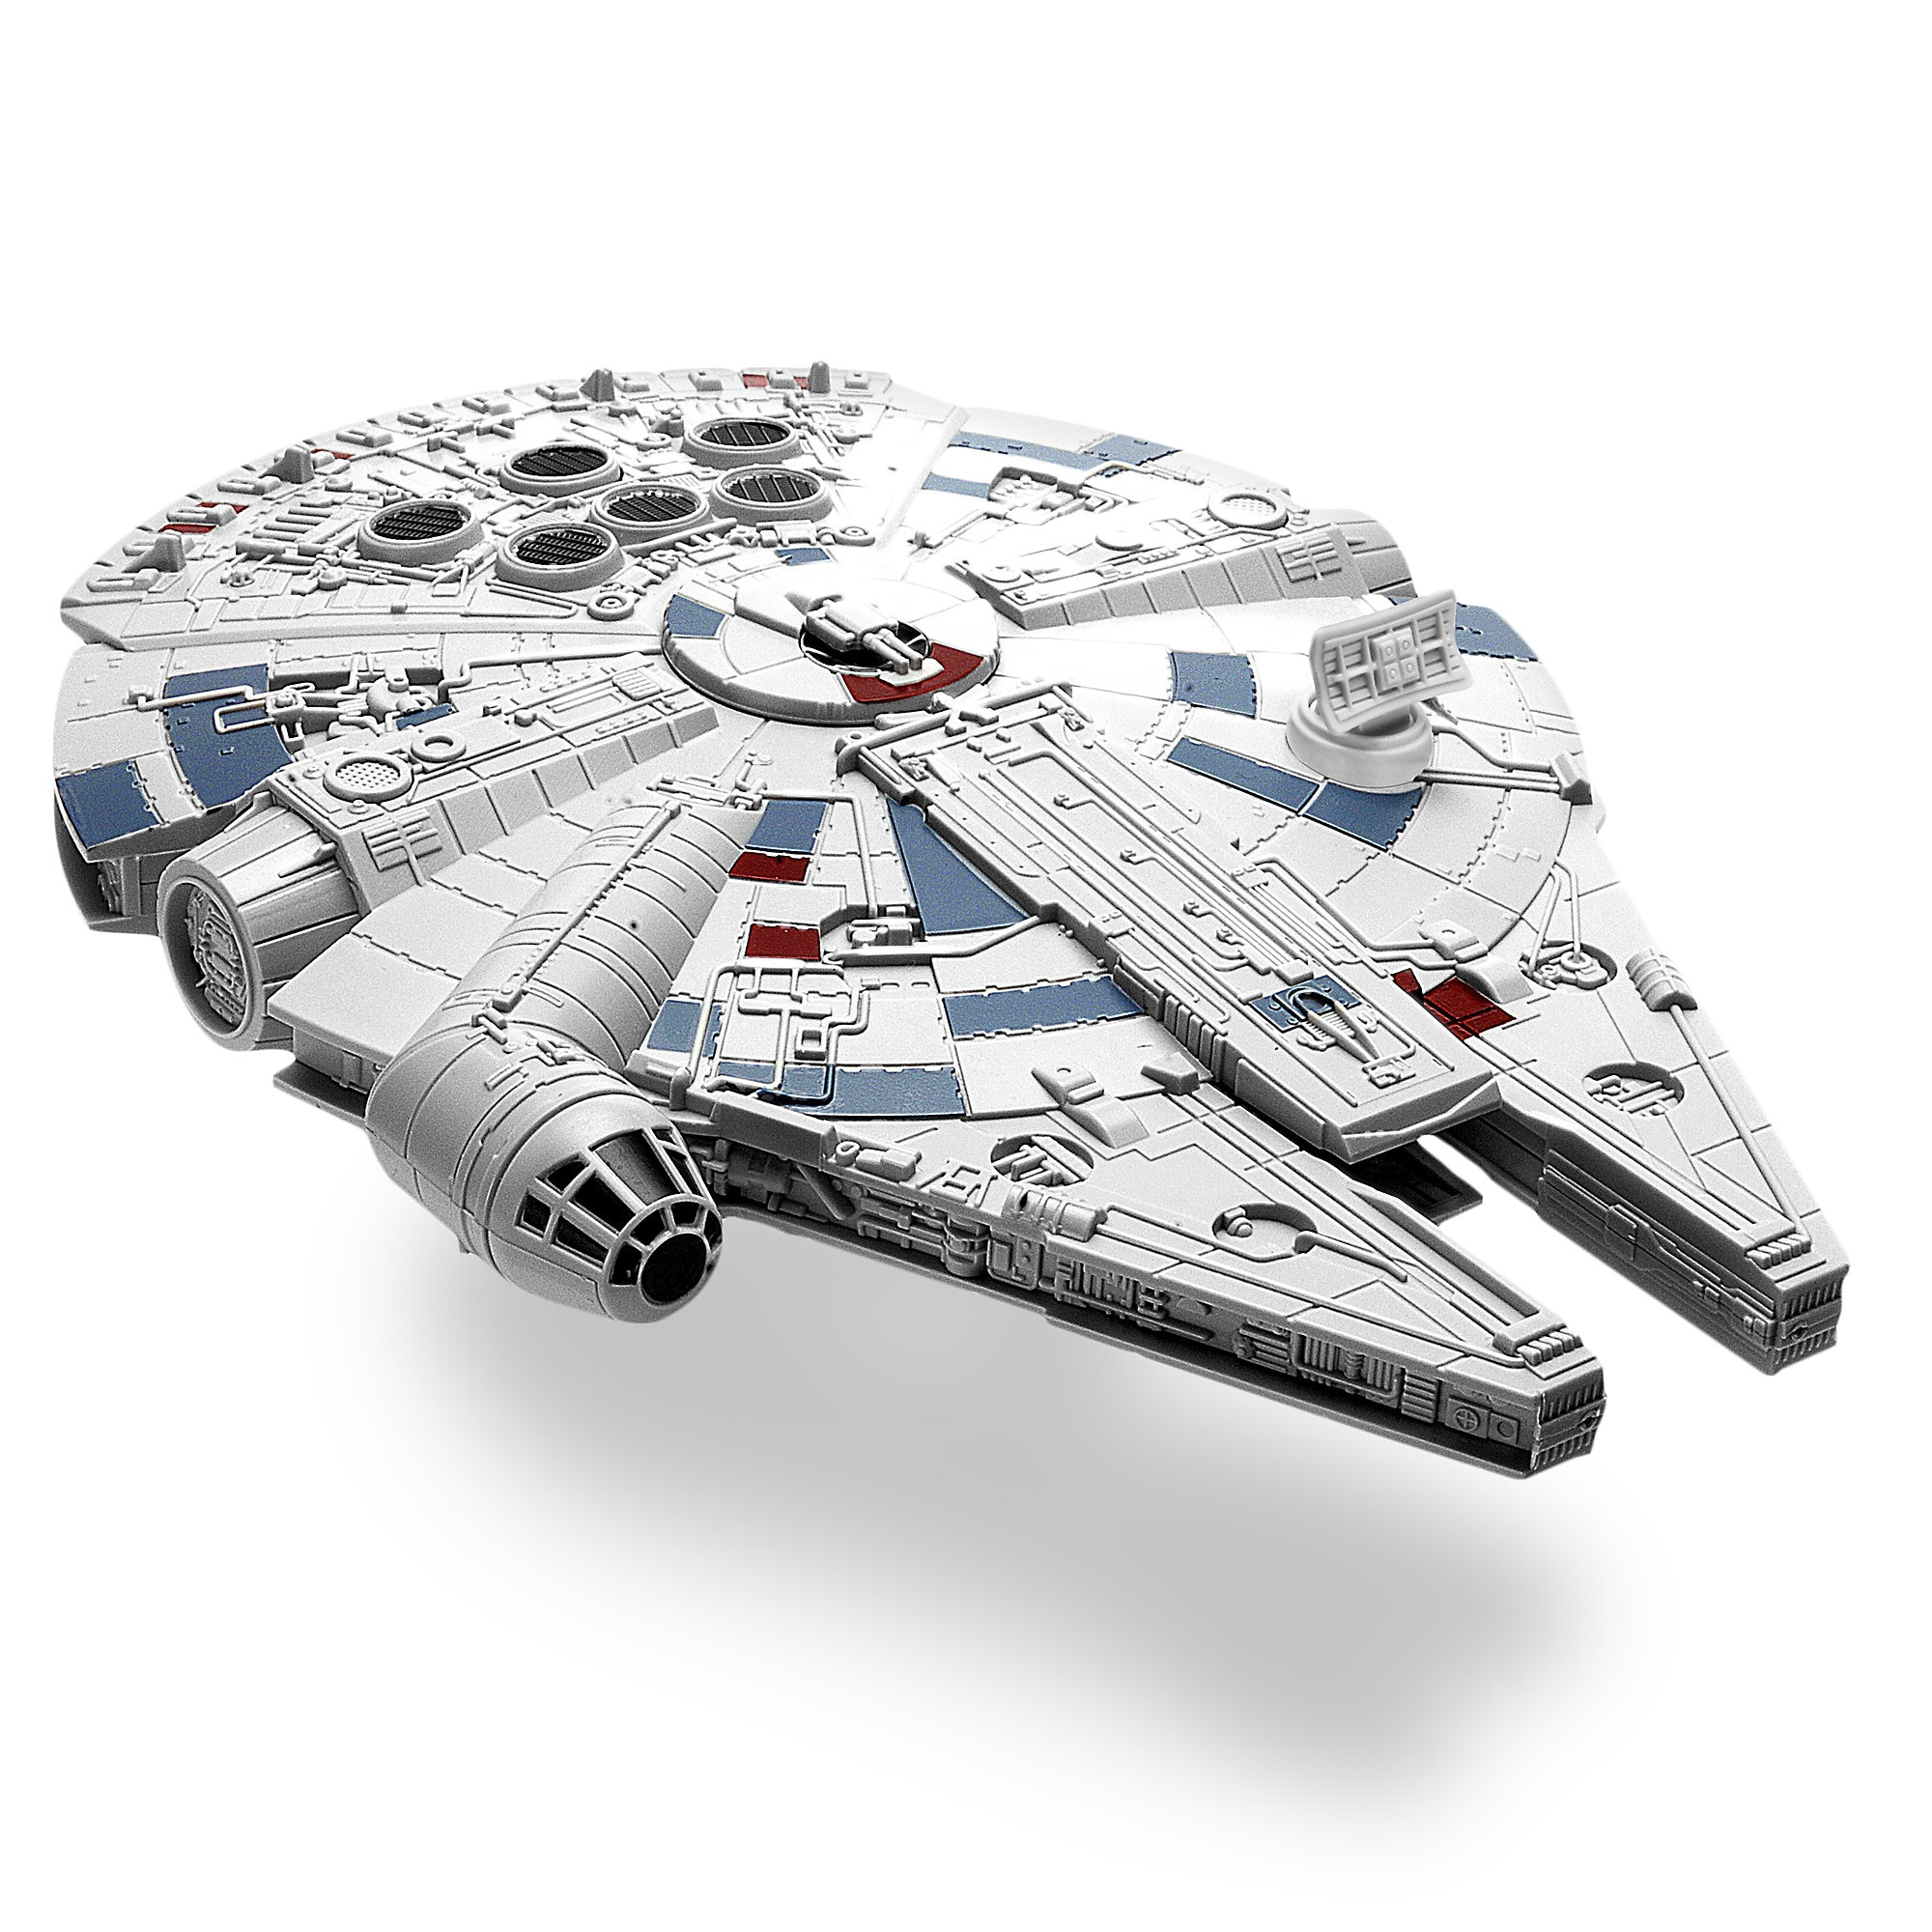 Millennium Falcon Model Kit - Star Wars: The Last Jedi